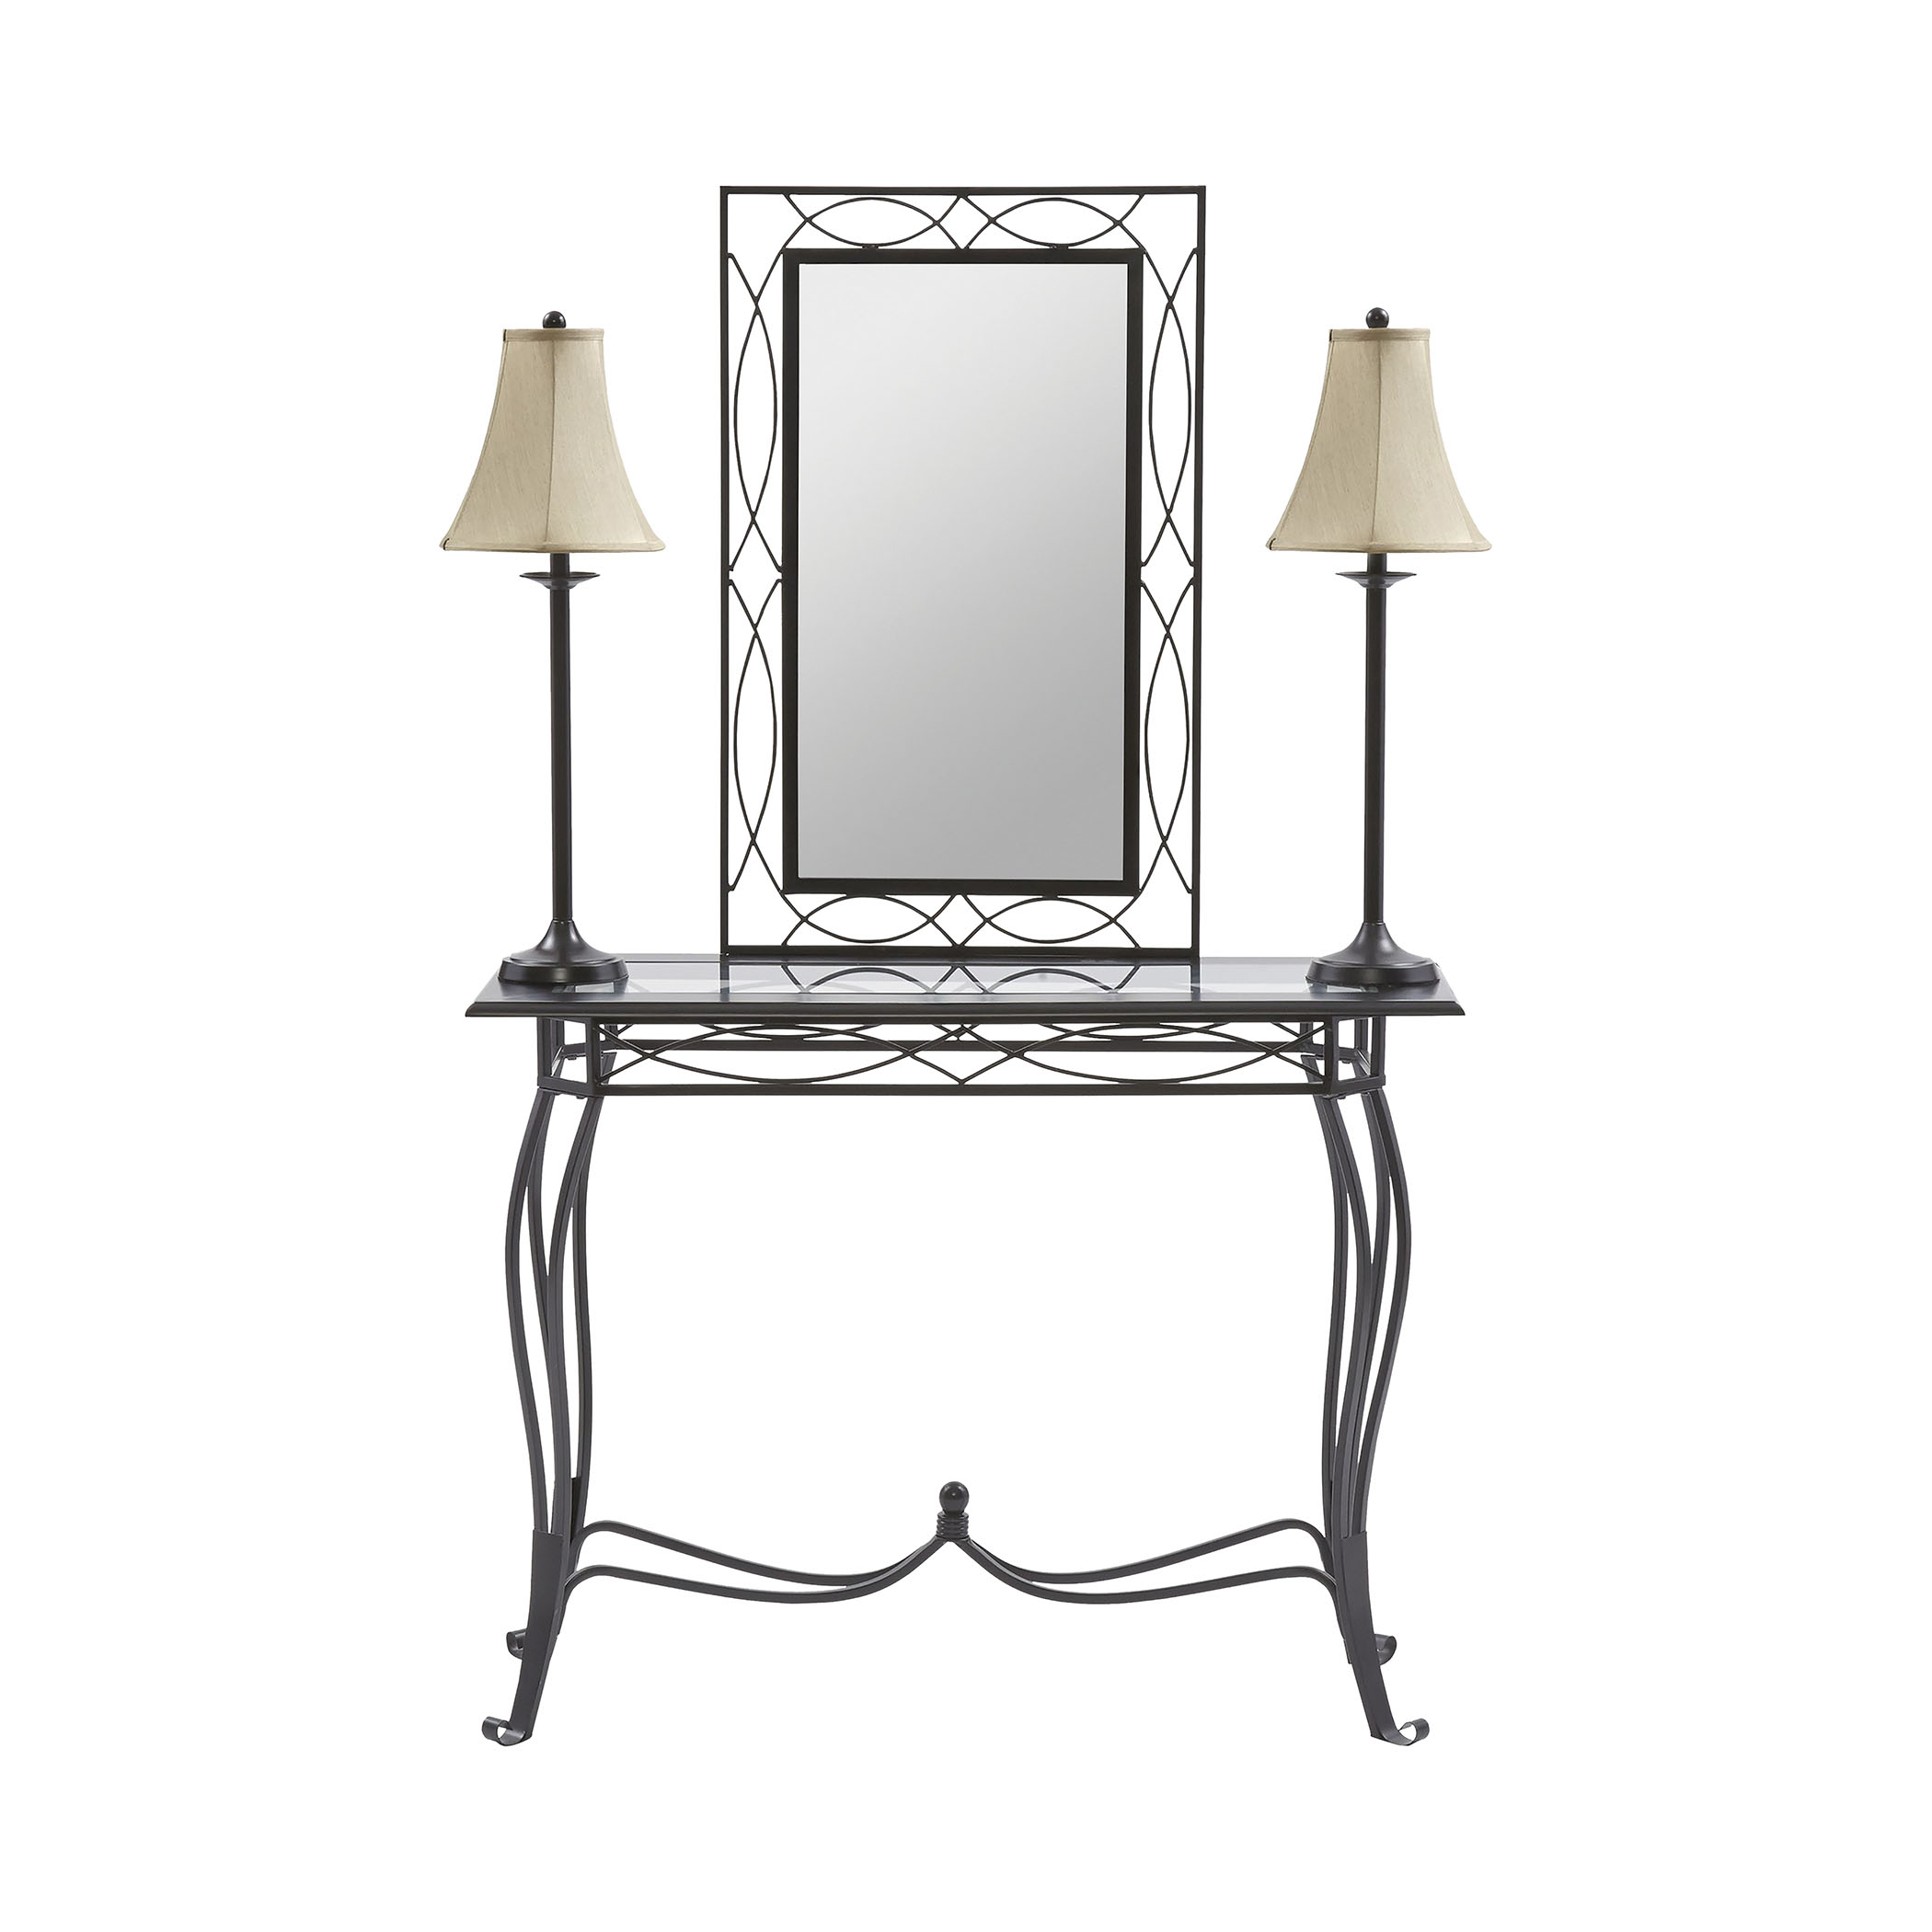 Stein World Esther 4-Piece Set (Table, Mirror, 2 Lamps)